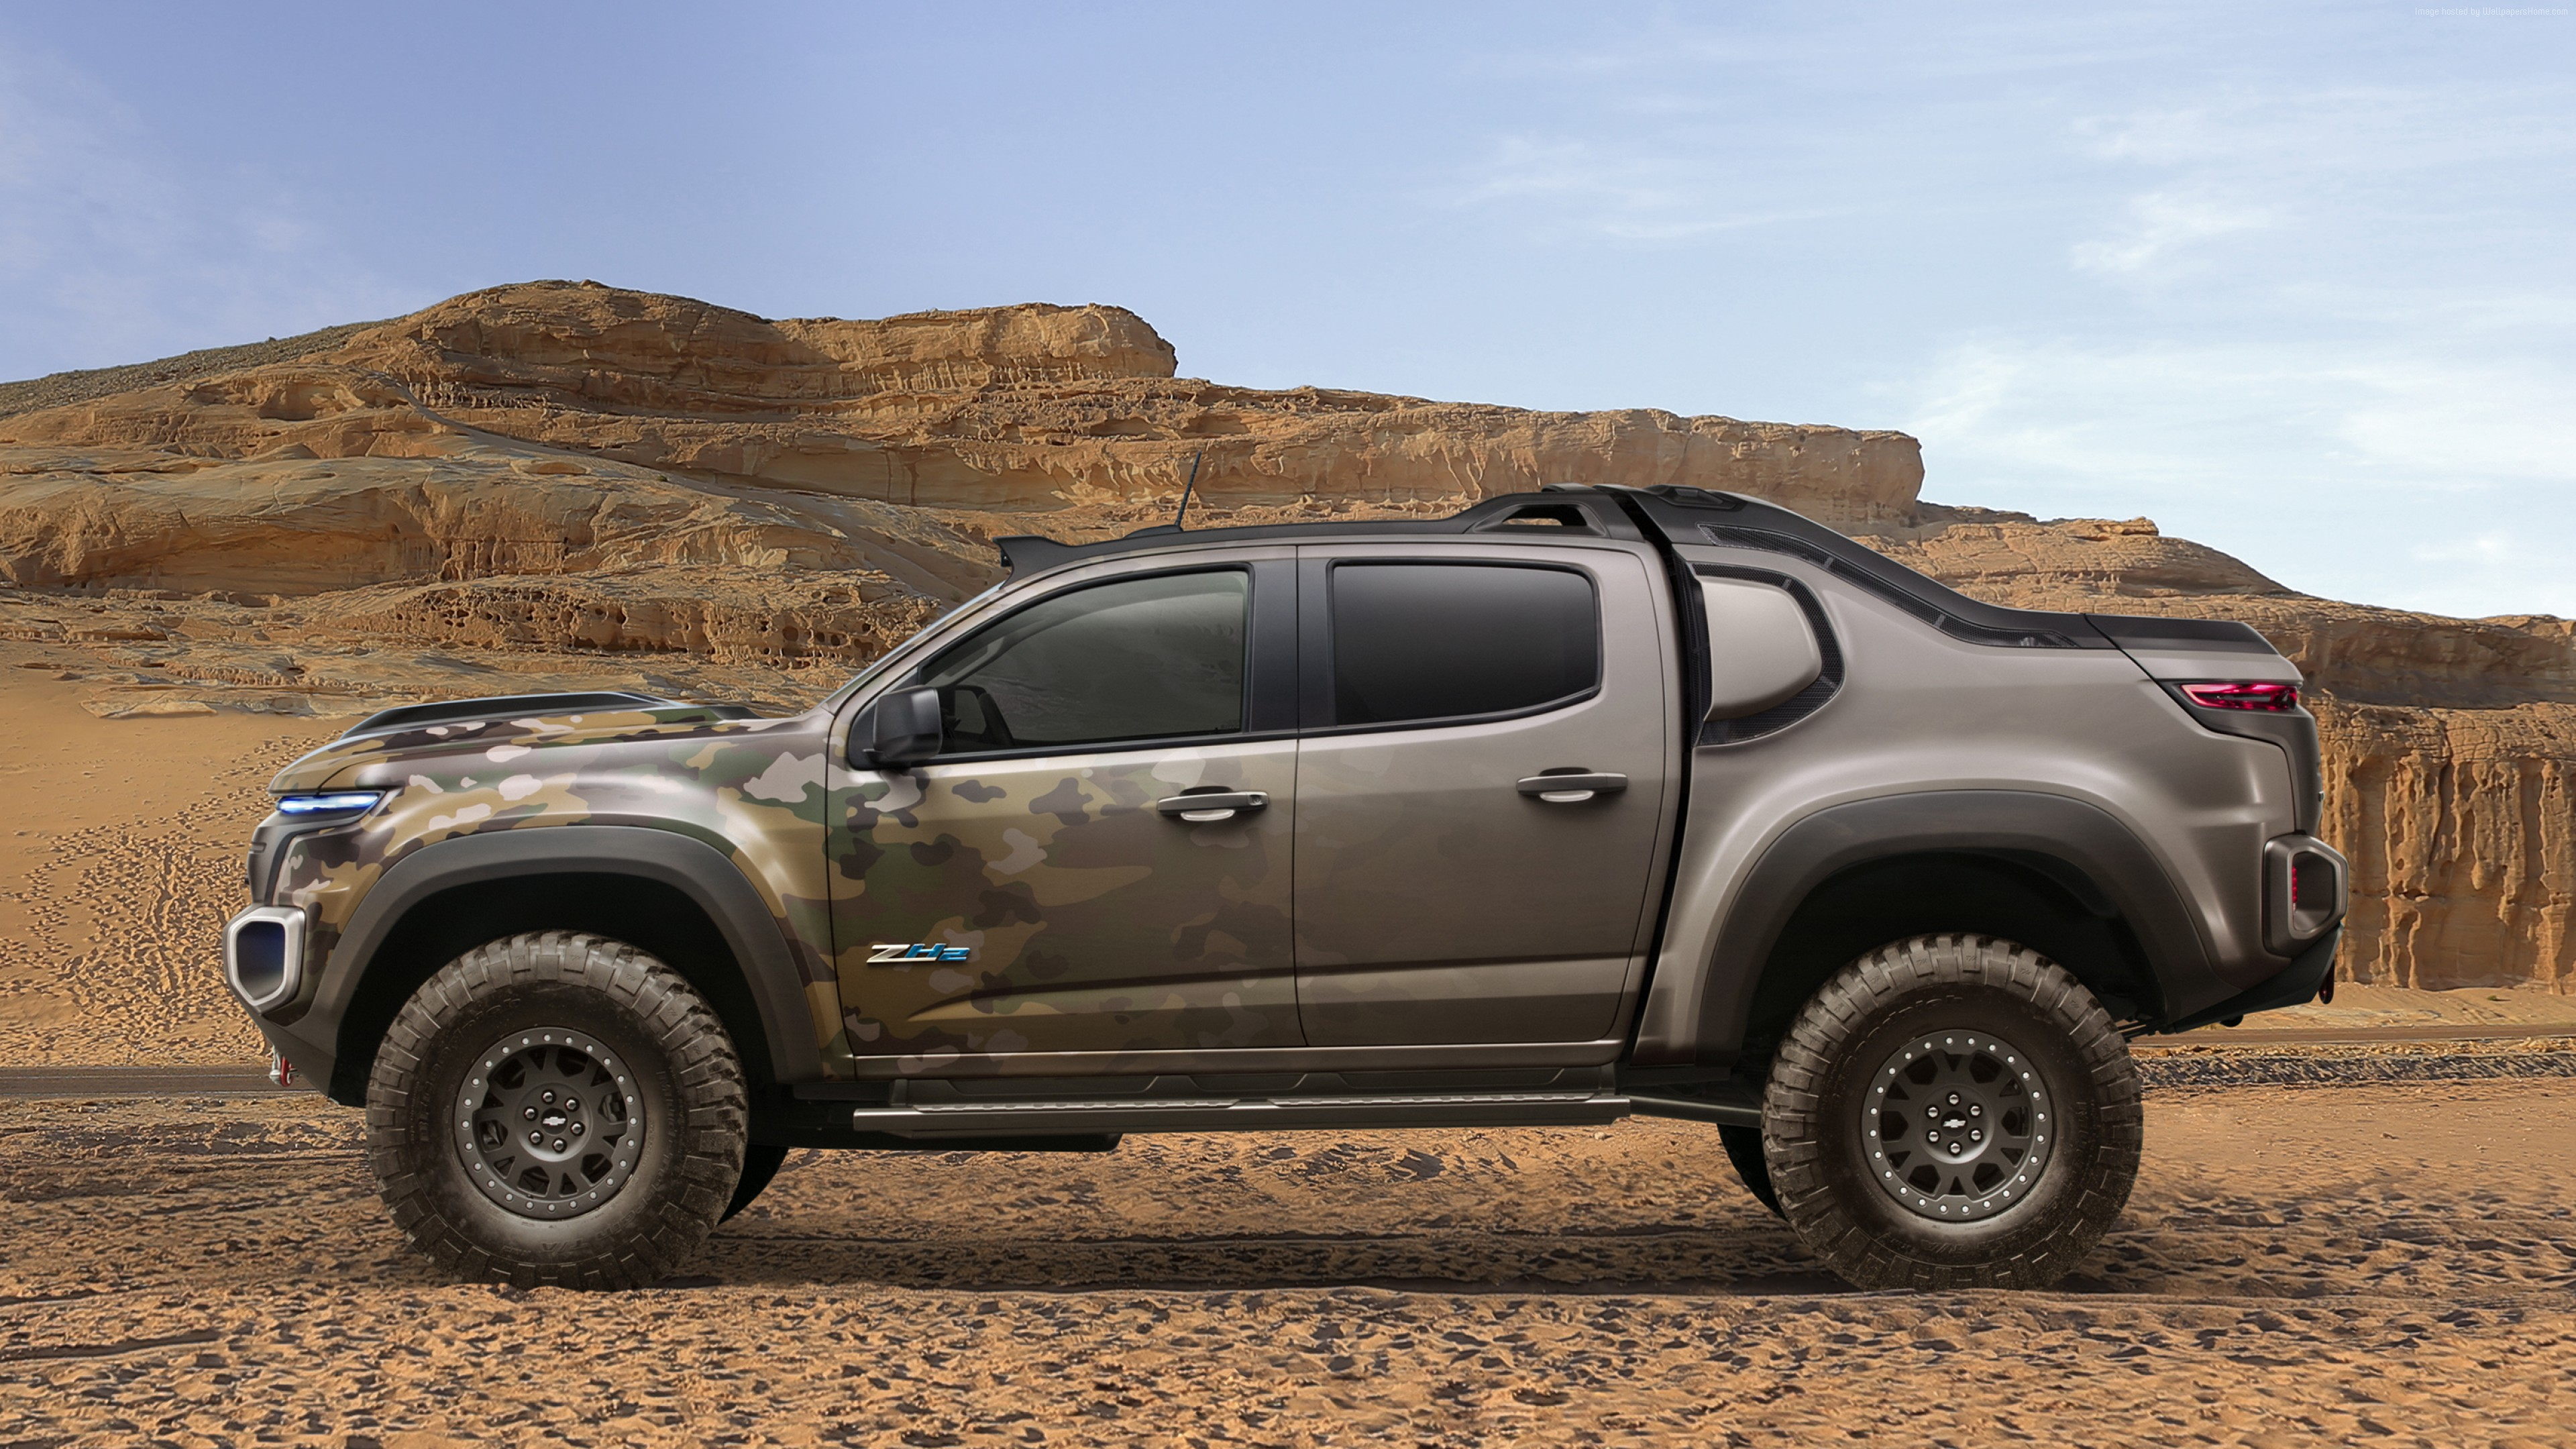 Wallpaper Chevrolet Colorado ZH2, Electric cars, U.S. Army, Vehicle, Military